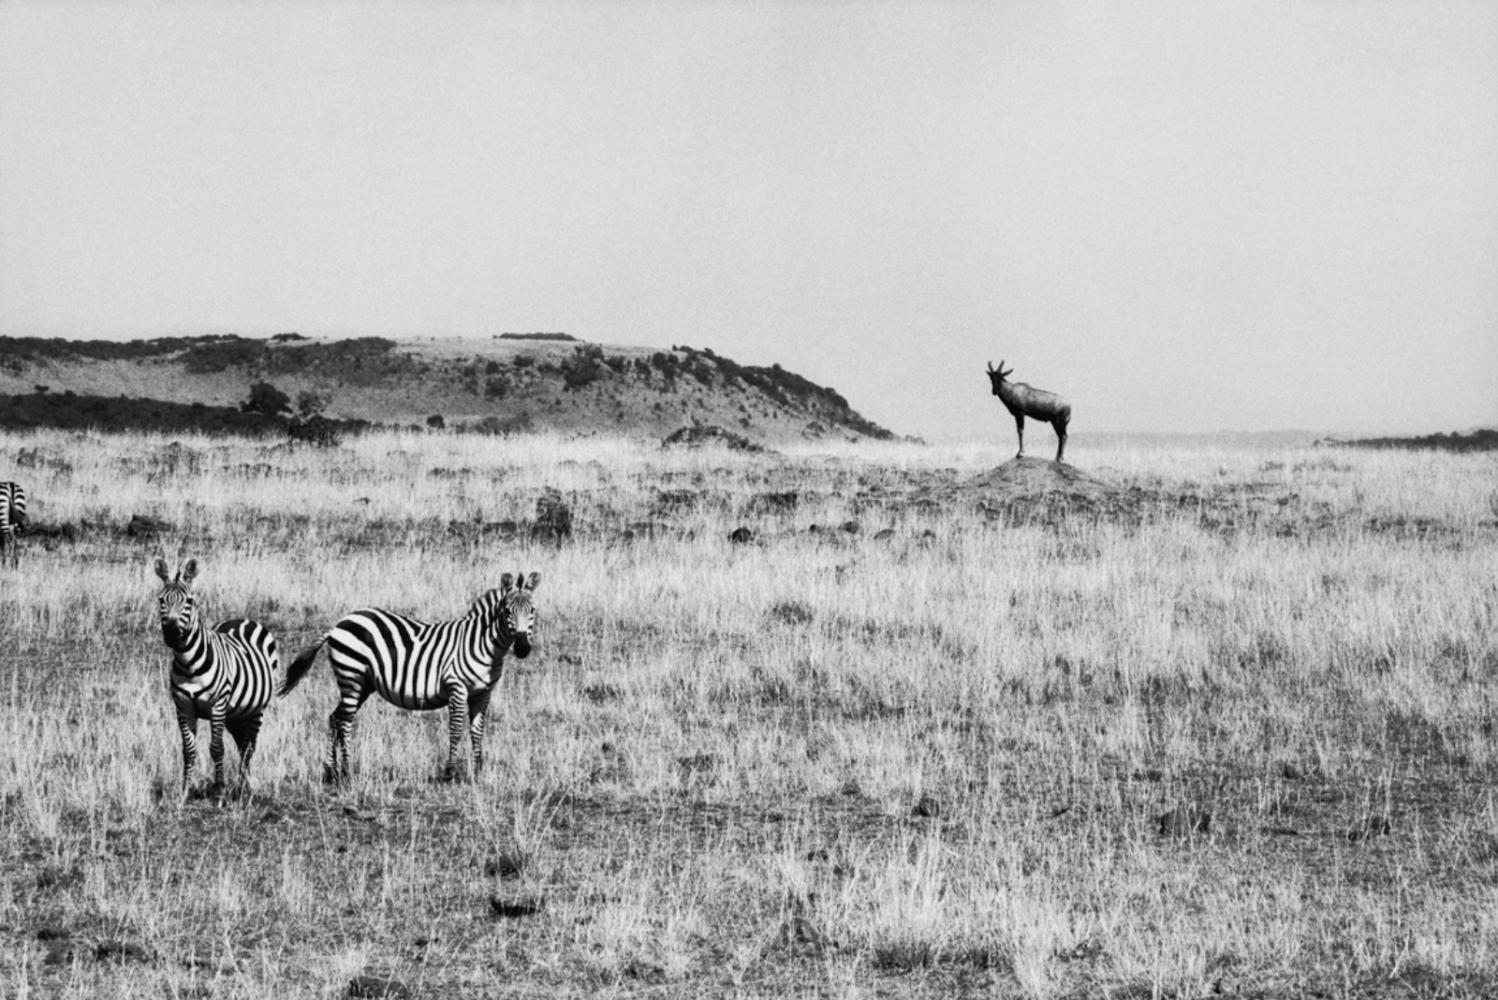 Two Zebras and an Antelope, Maasai Mara, Kenya, August 2002